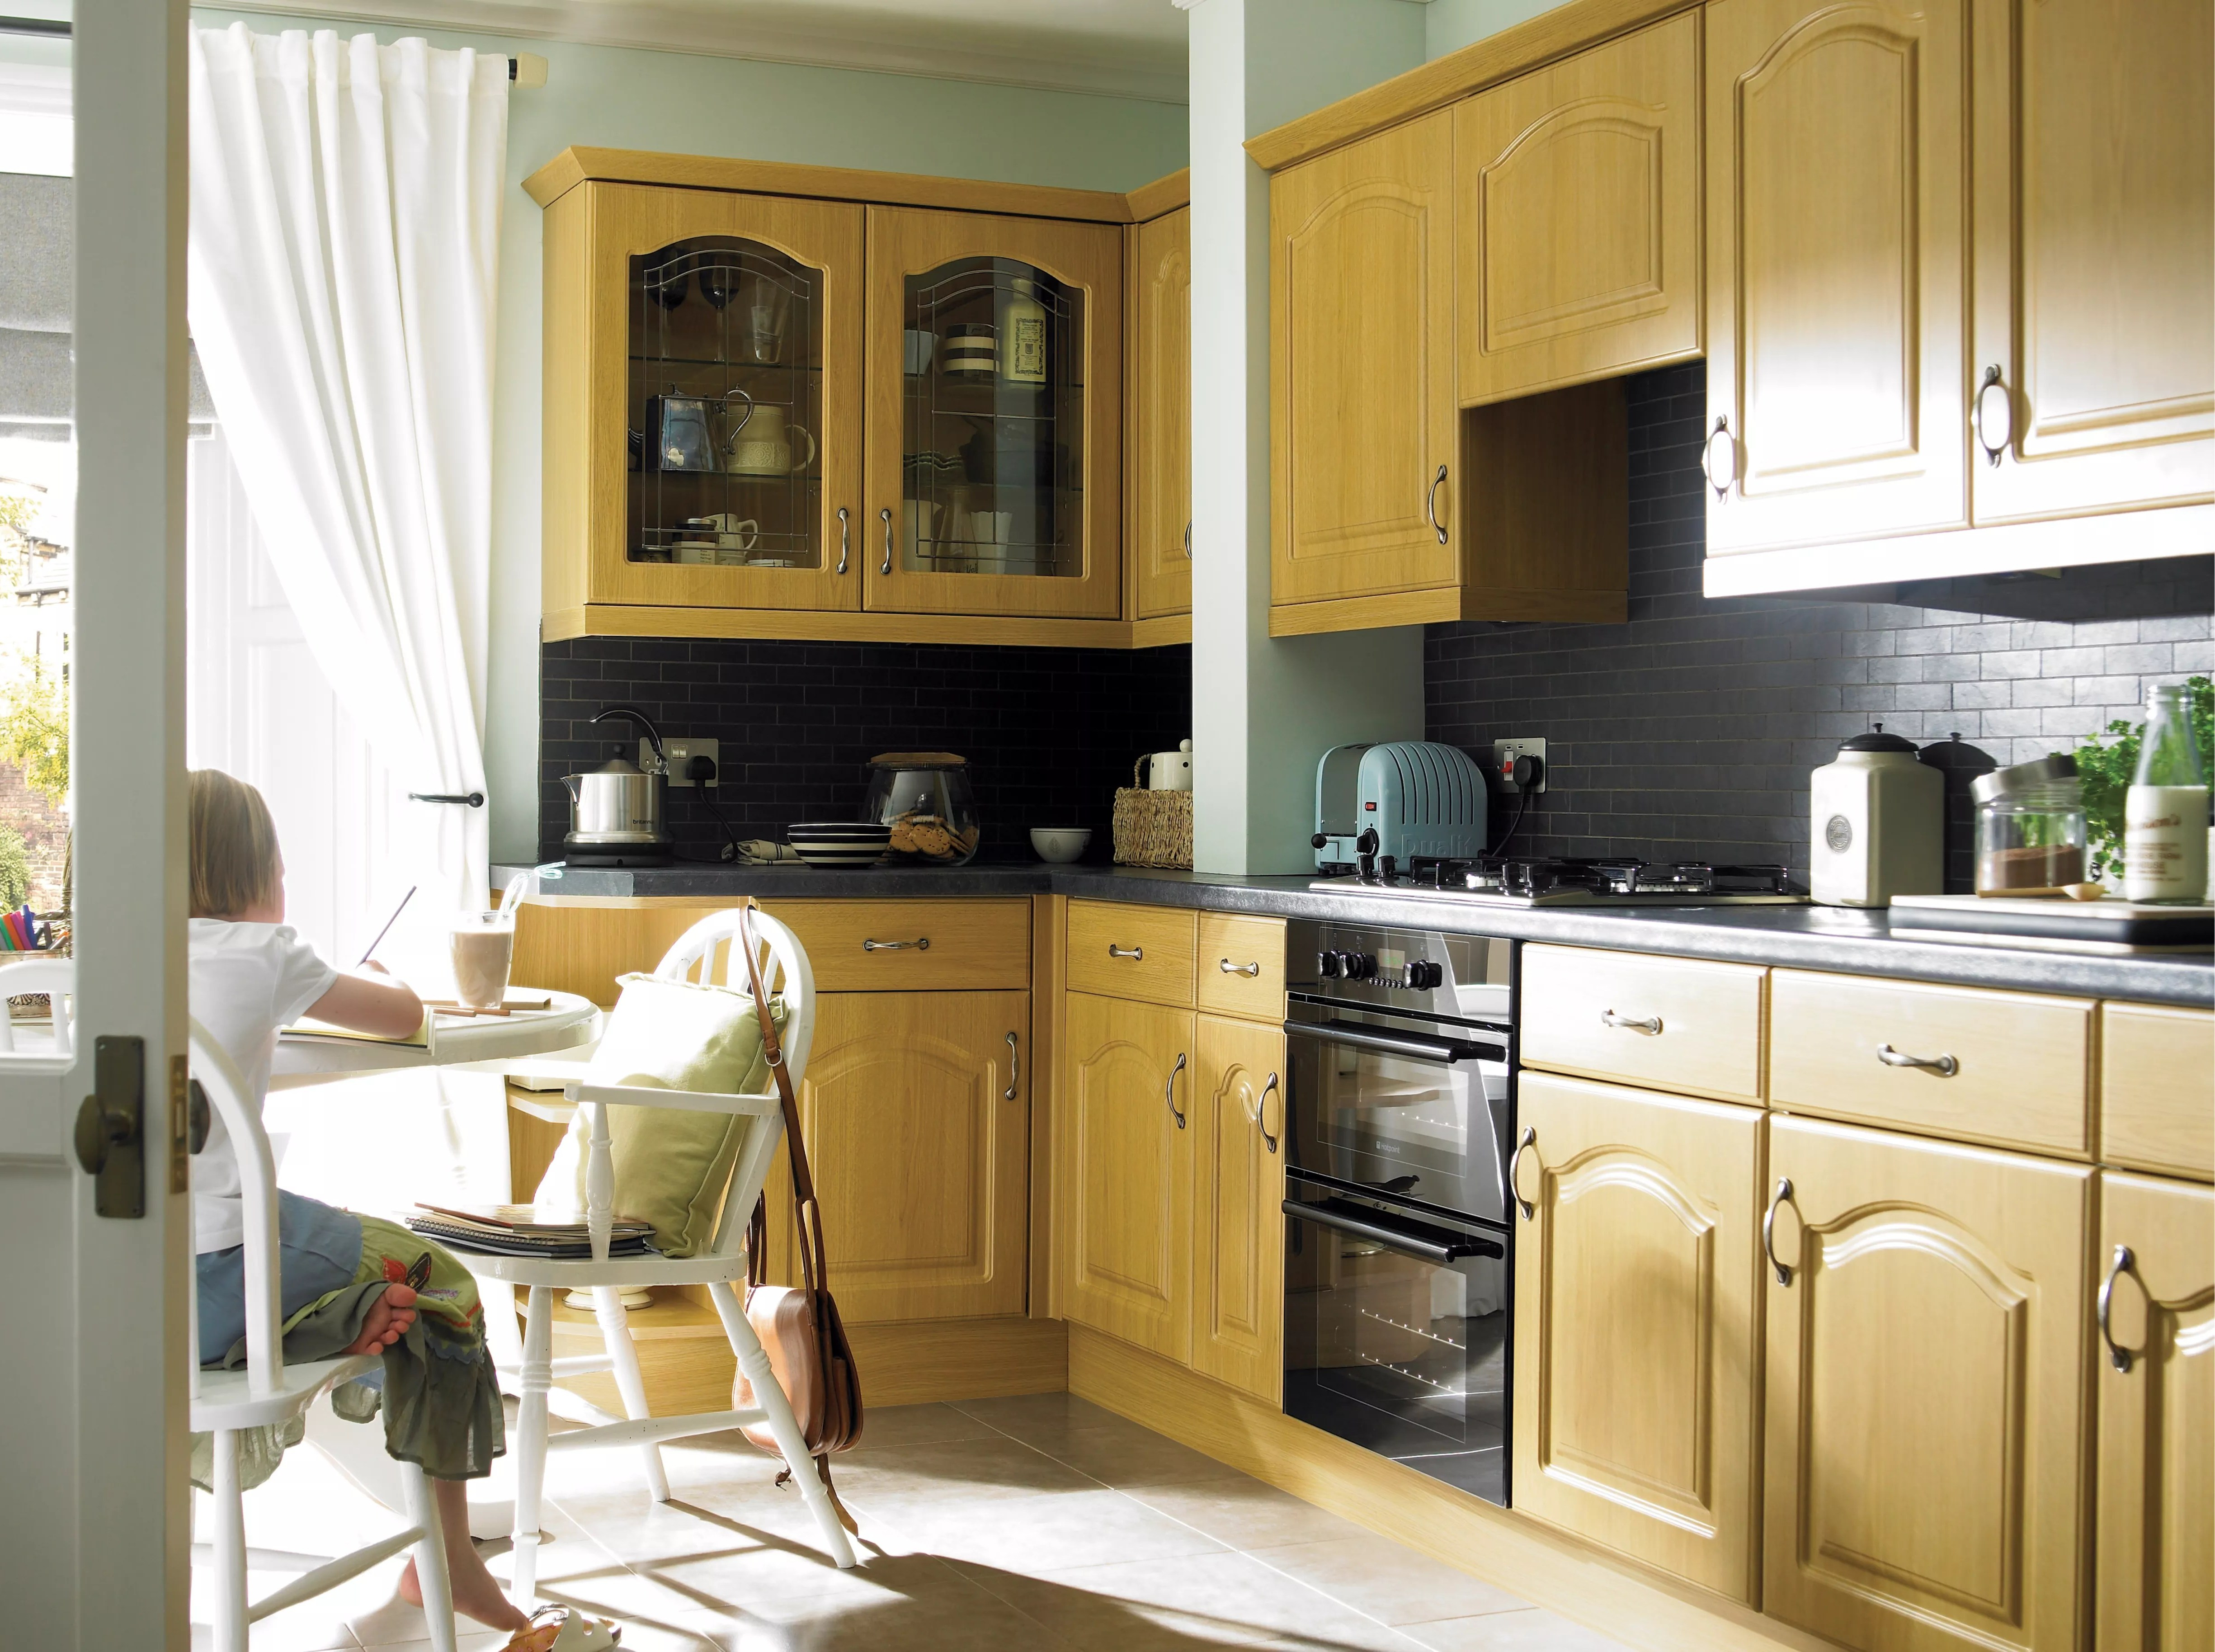 Galley Kitchen Ideas It Chilton Traditional Oak Effect | Diy At B&q